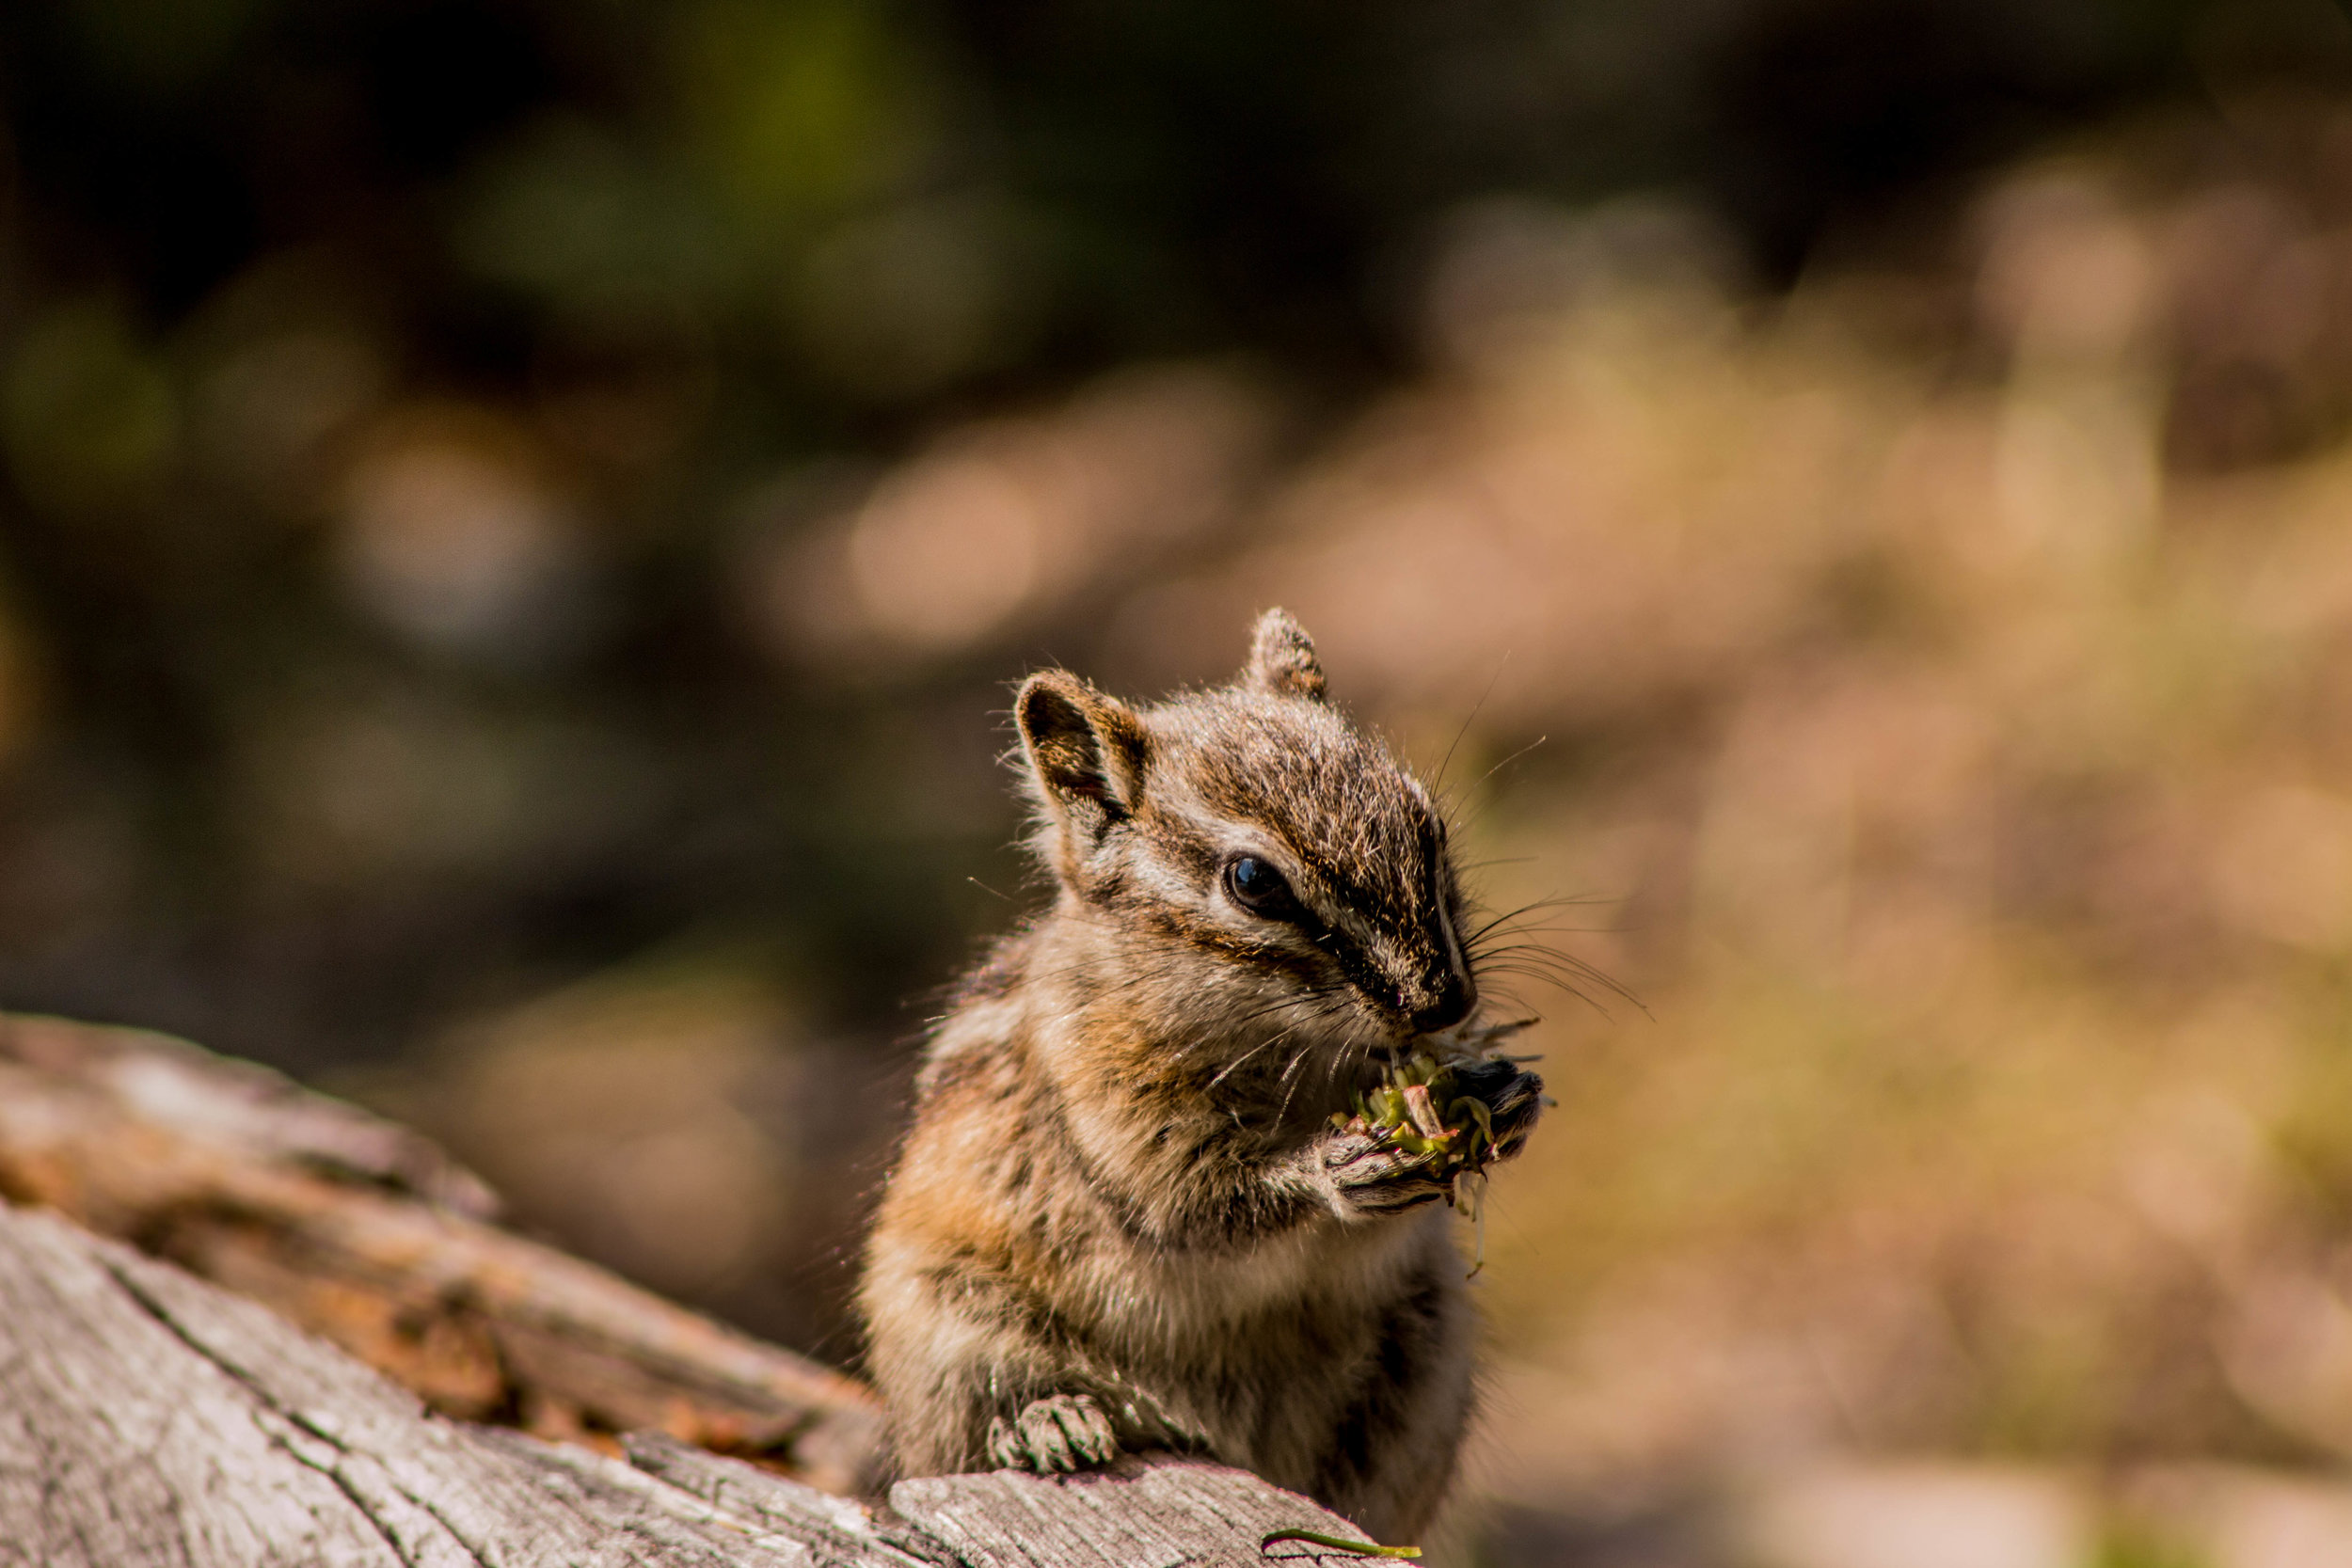 Chipmunk on a log